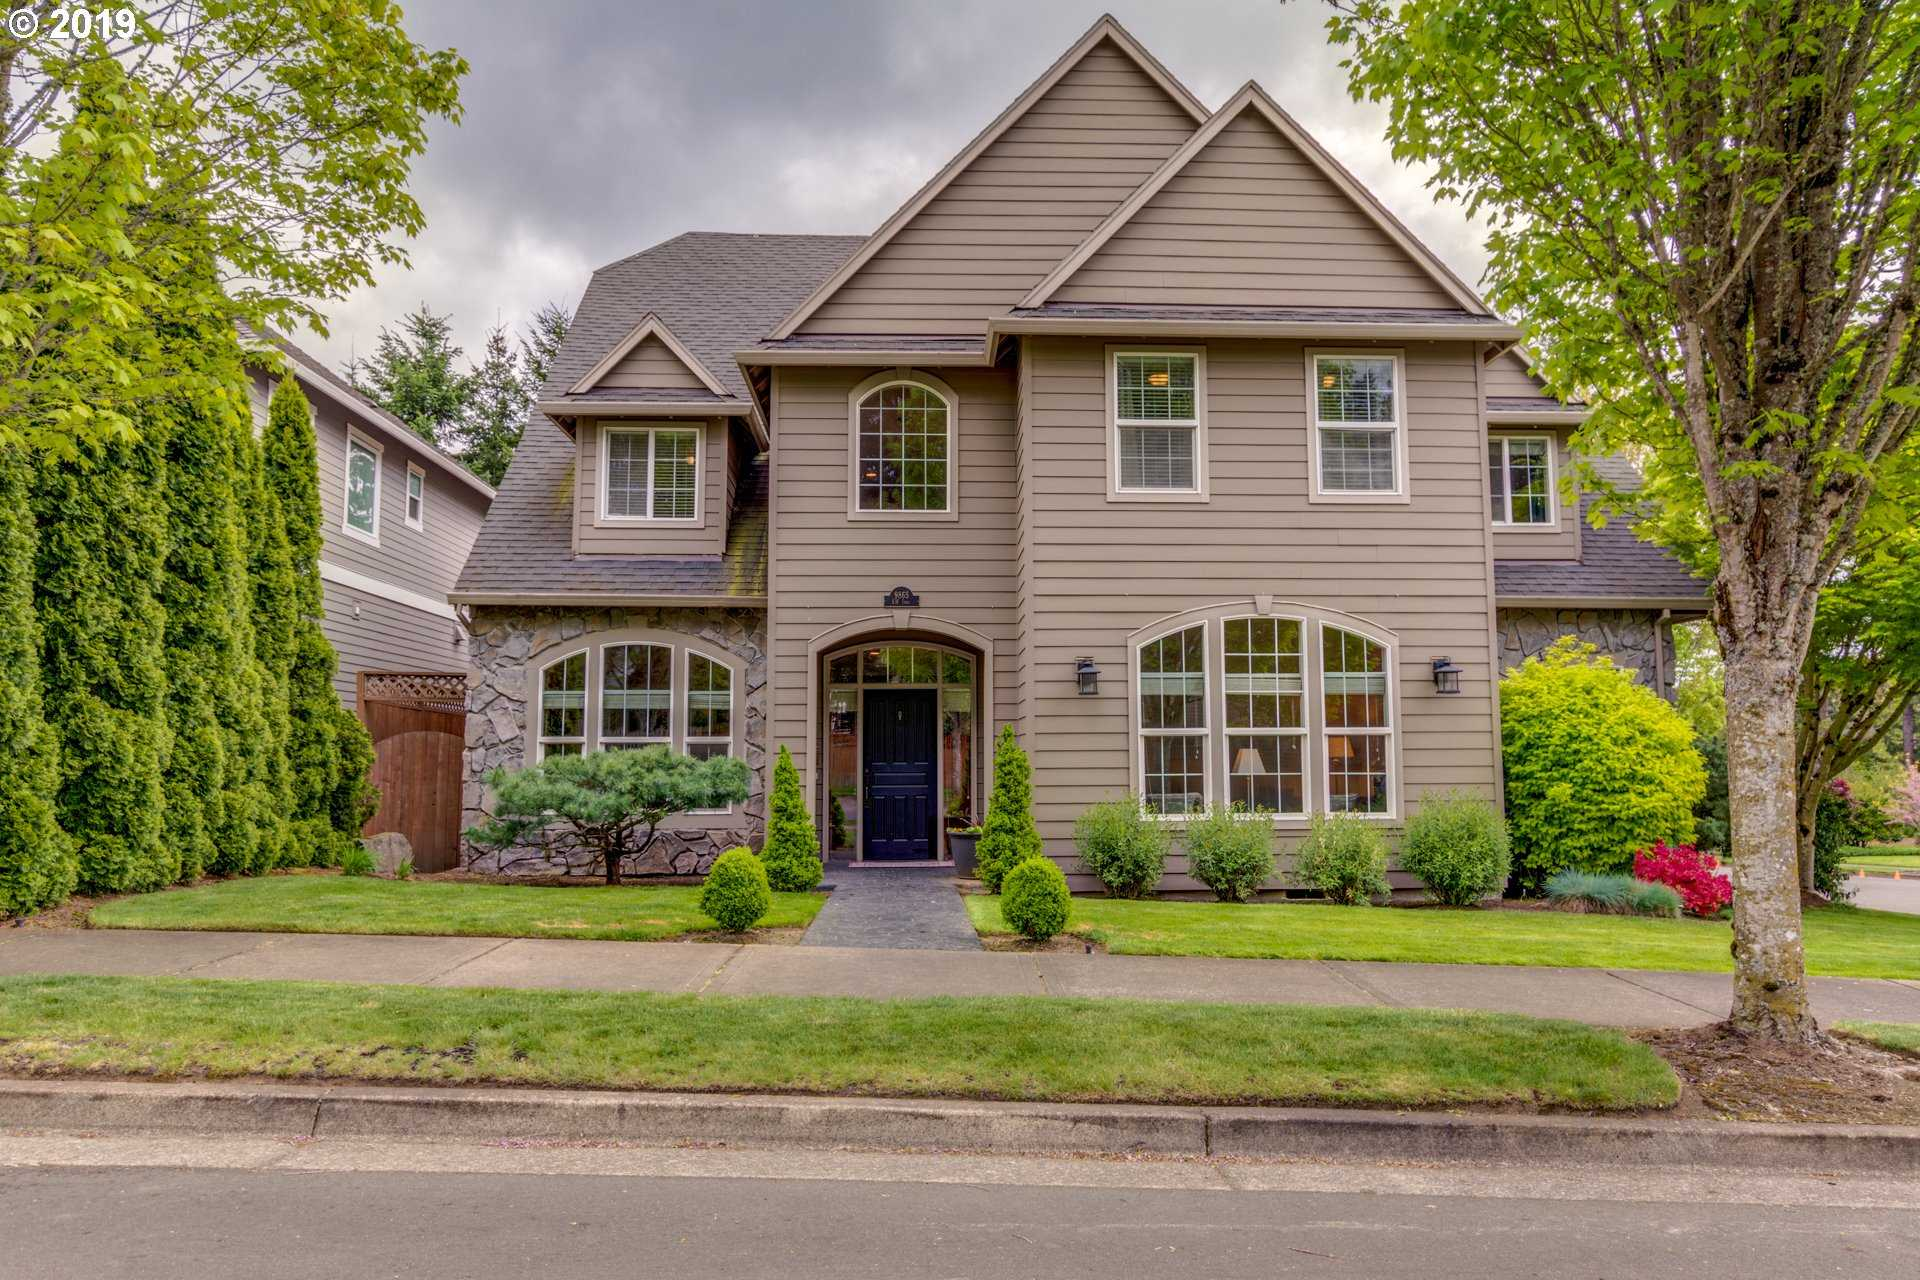 $849,900 - 4Br/3Ba -  for Sale in Victoria Woods, Tualatin